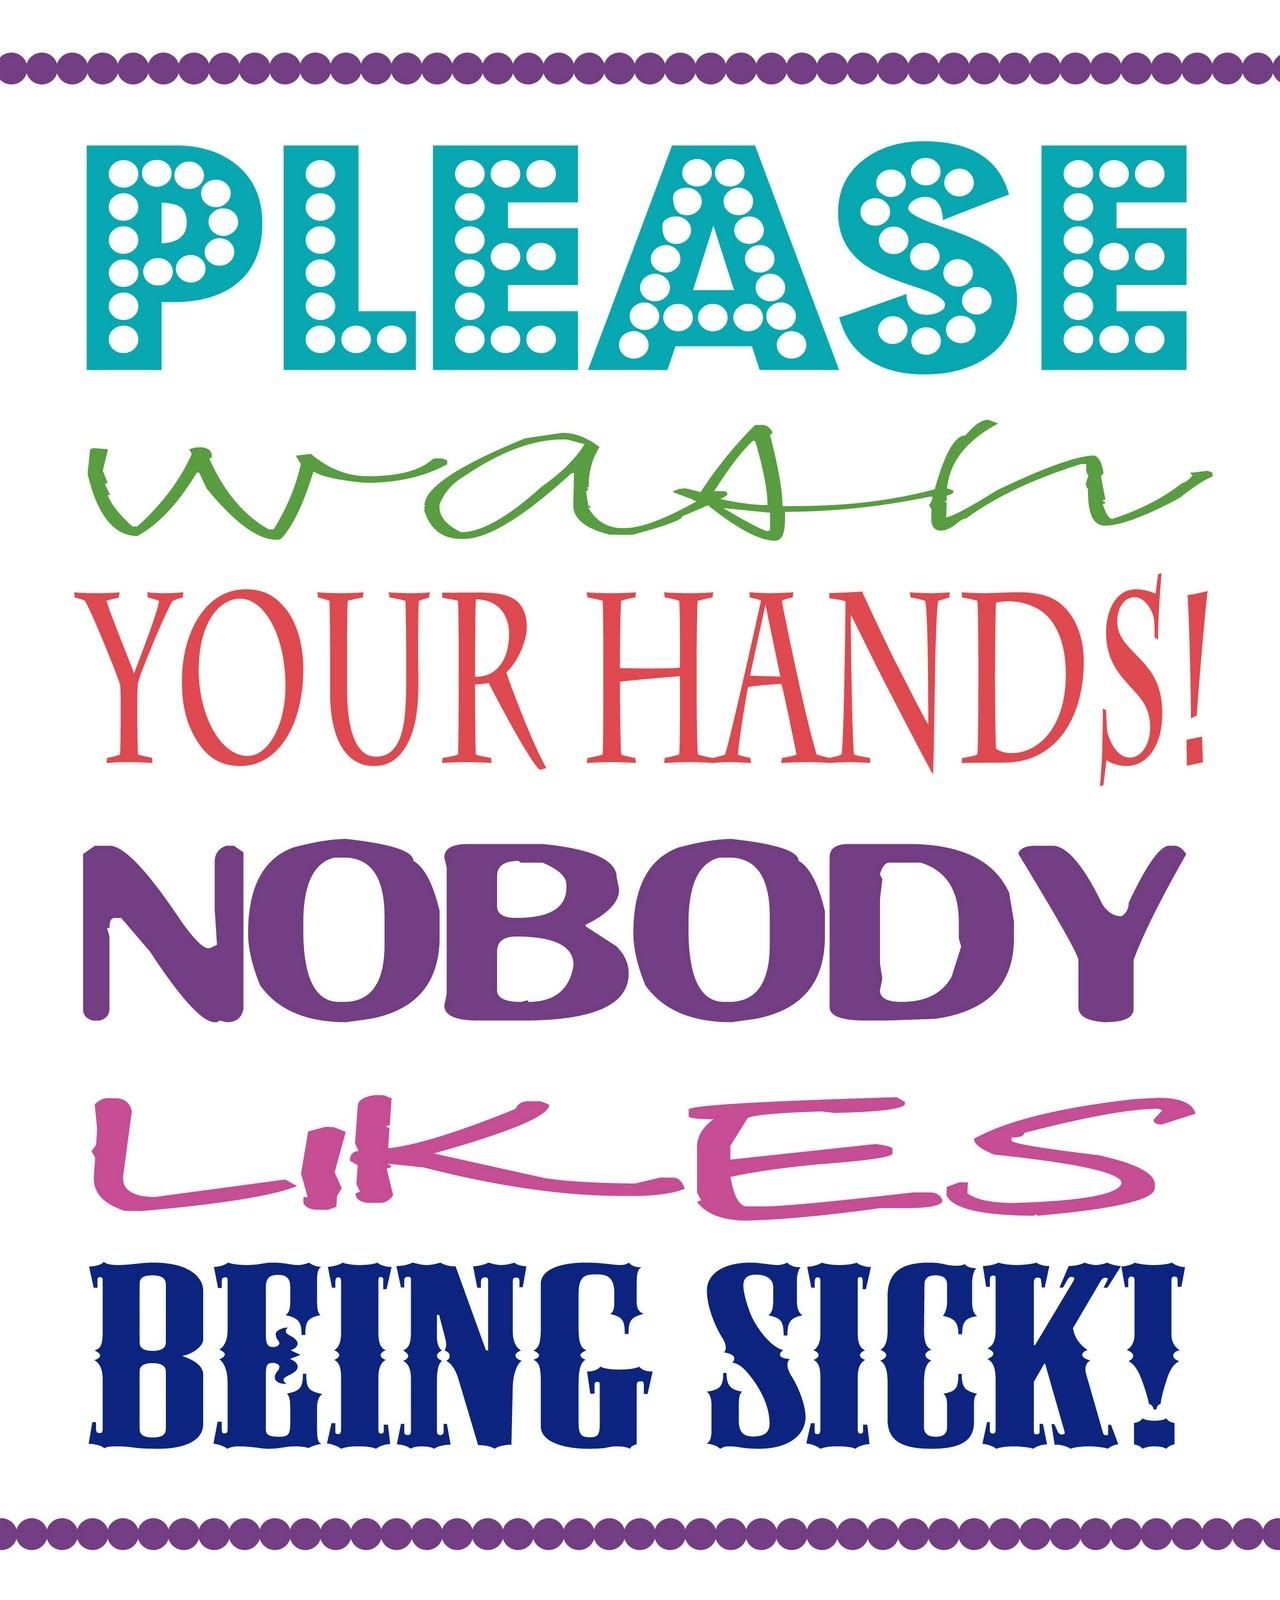 Evening Birdsong: Wash Your Hands Printable - Free Wash Your Hands Signs Printable